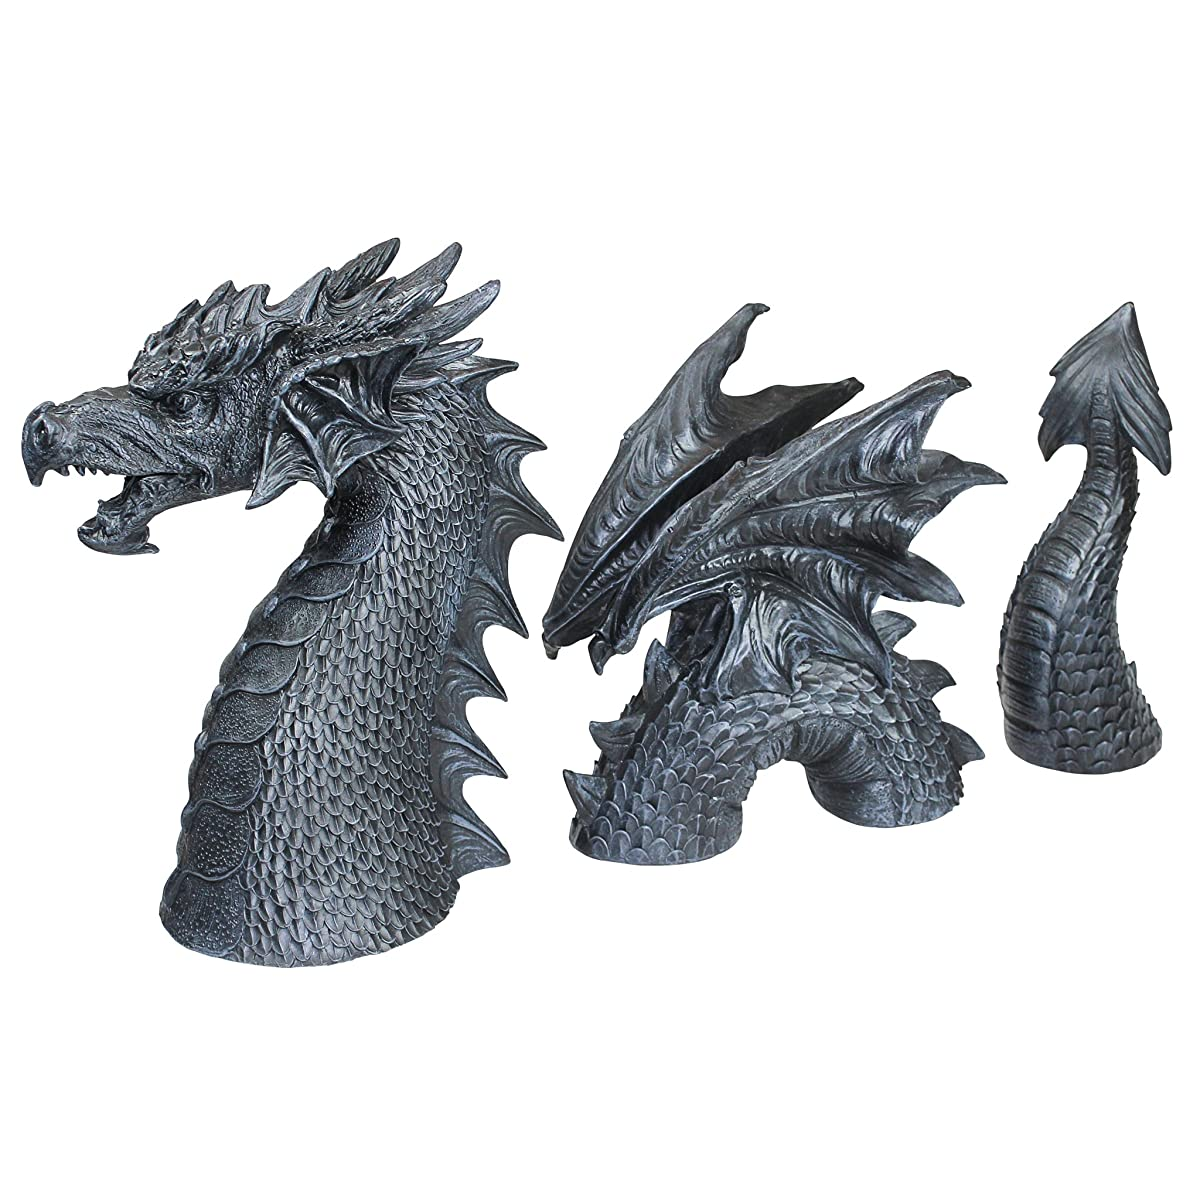 Design Toscano The Dragon of Falkenberg Castle Moat Lawn Garden Statue, 28 Inch Total, Polyresin, Grey Stone